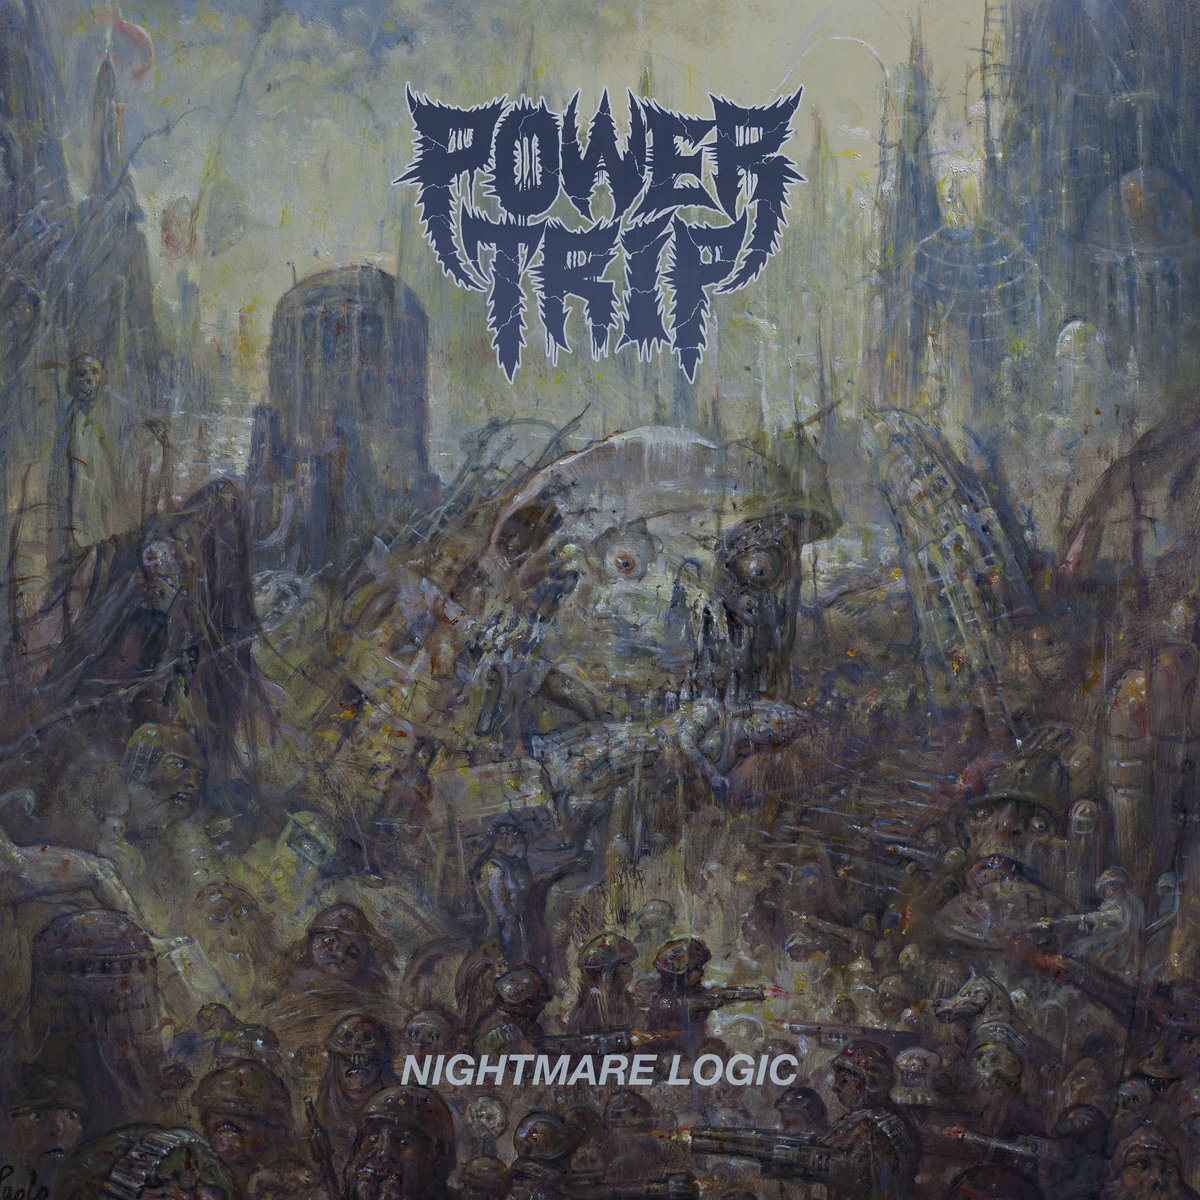 10. Power Trip - Nightmare Logic - These guys have come a long way since I saw them ~8 years ago at the old Emos in Austin, TX. Nightmare Logic is a catchy, catchy thrash metal album, plain and simple. Chunky guitars, neck-snapping riffs, in-your-face drumbeats, politically charged lyrics, and an